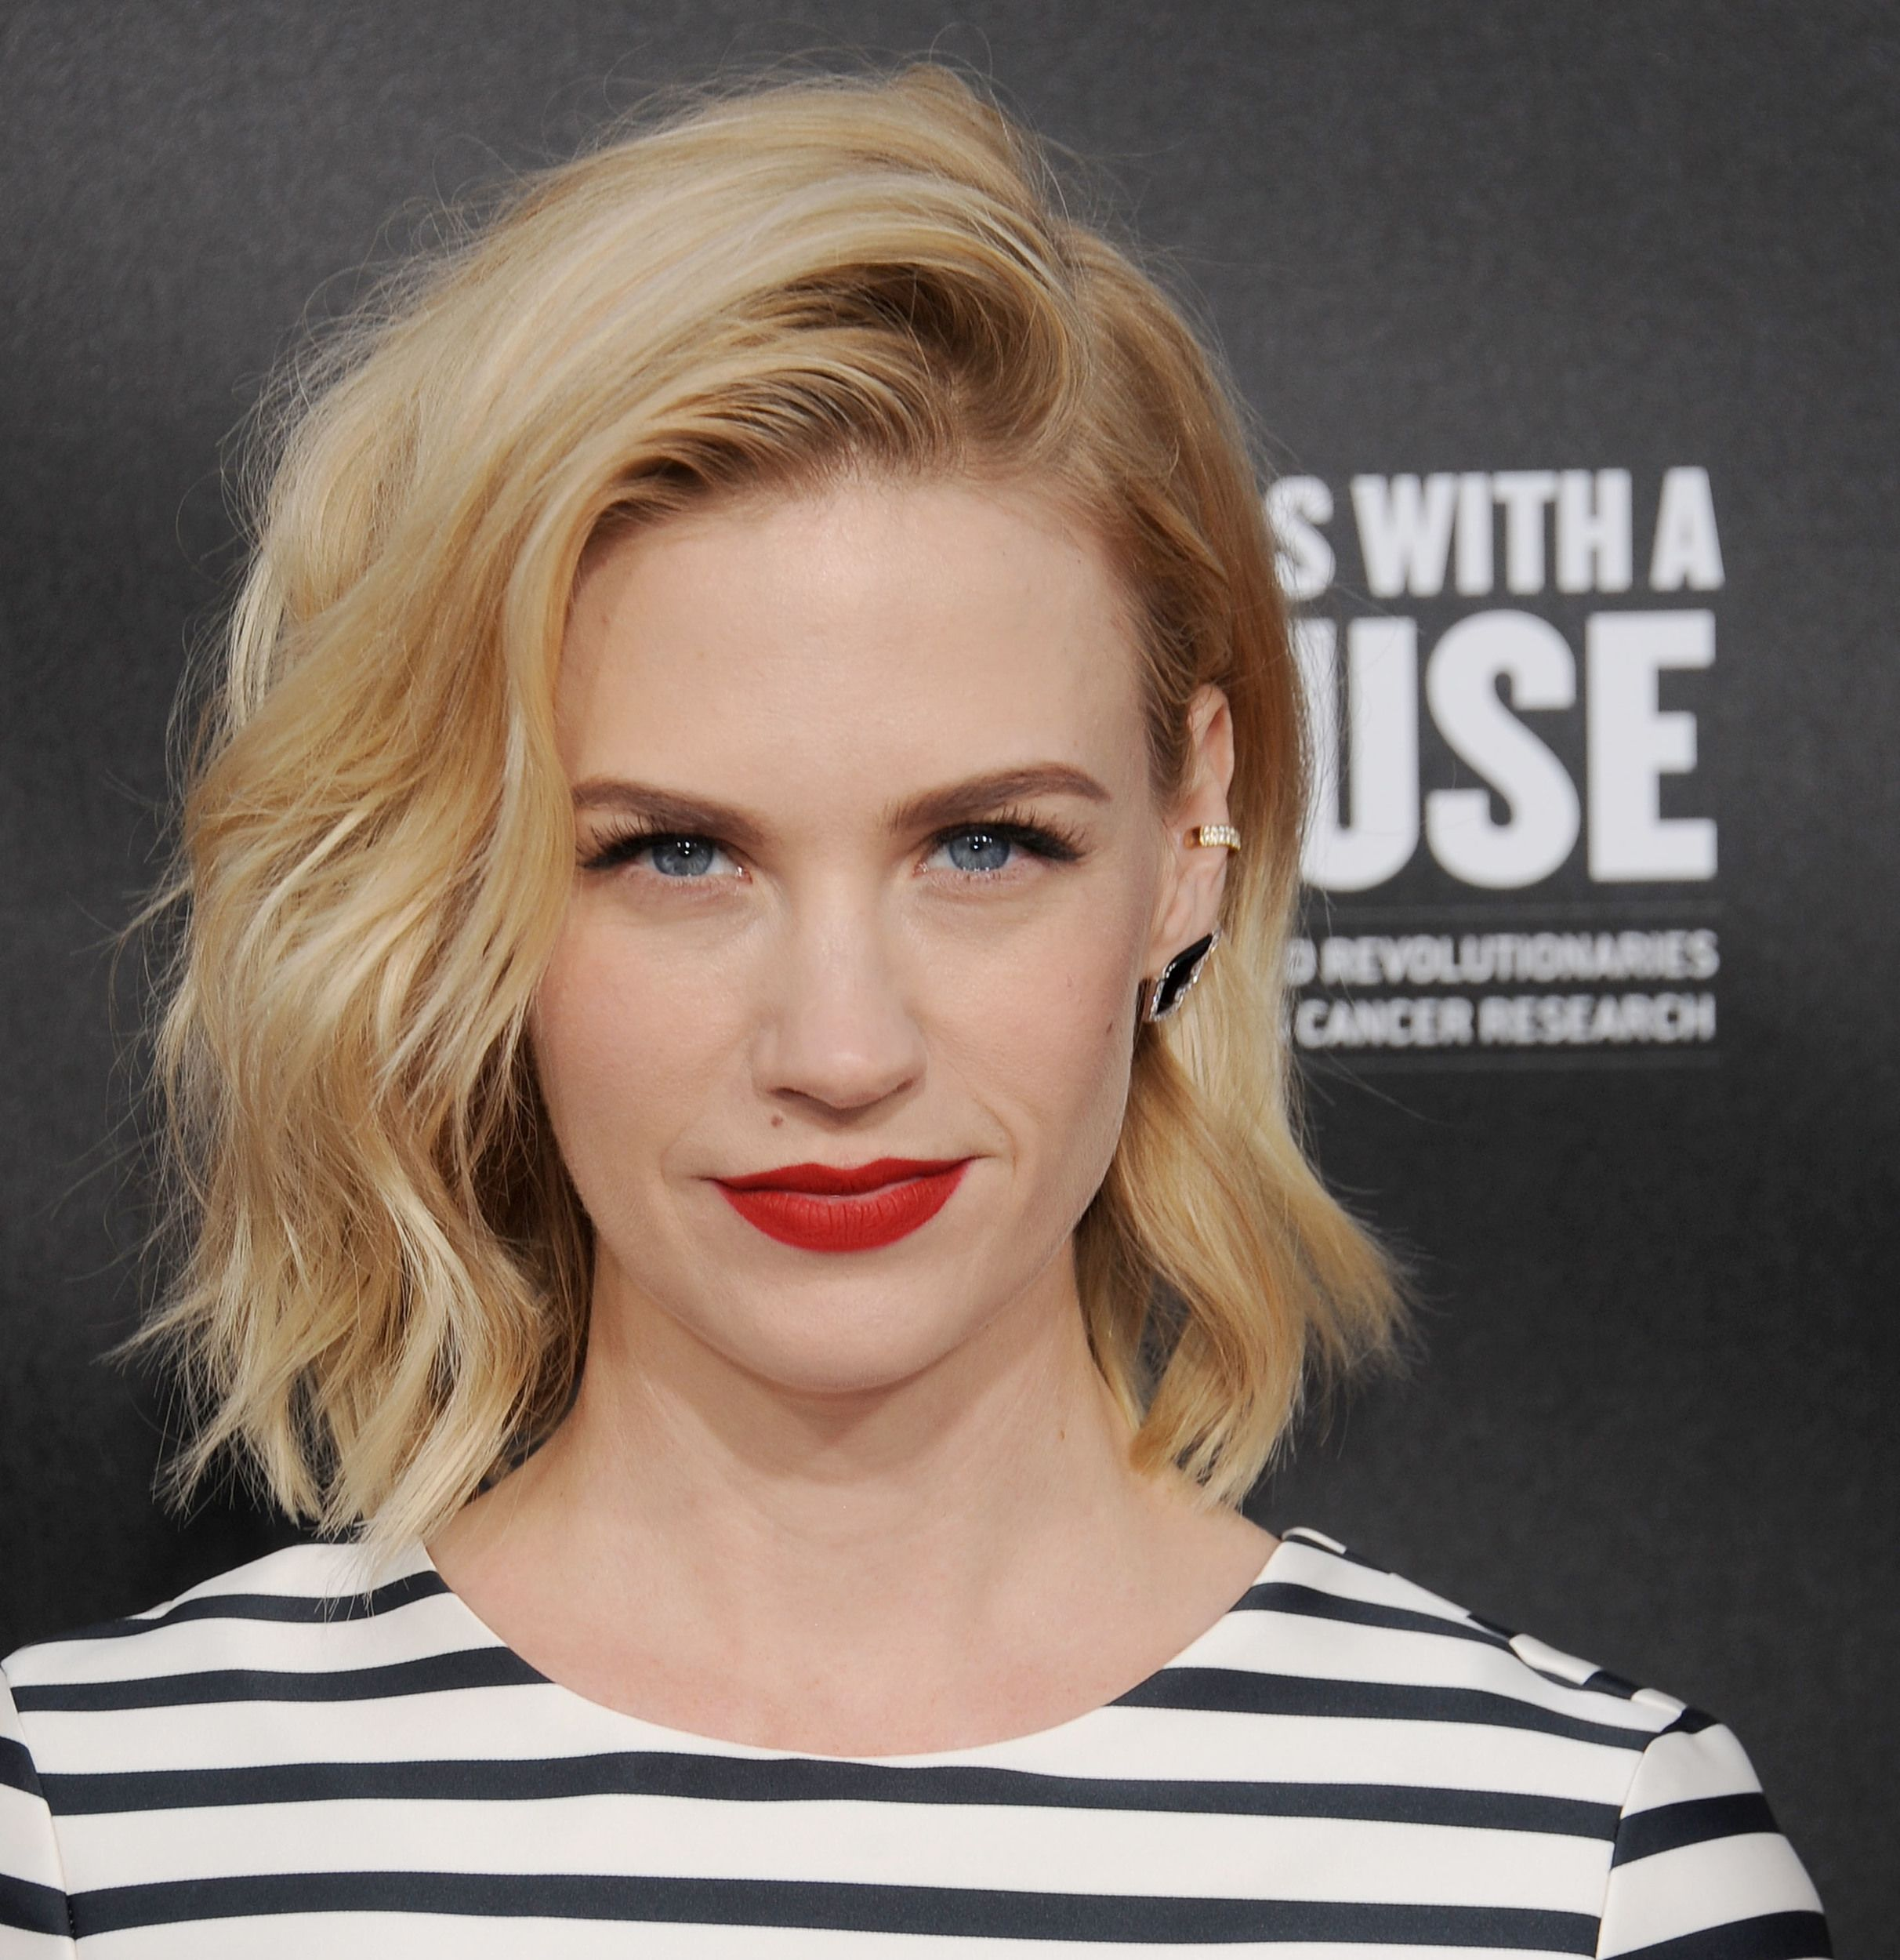 The lob this summerus hottest hair cut january jones lob and make up